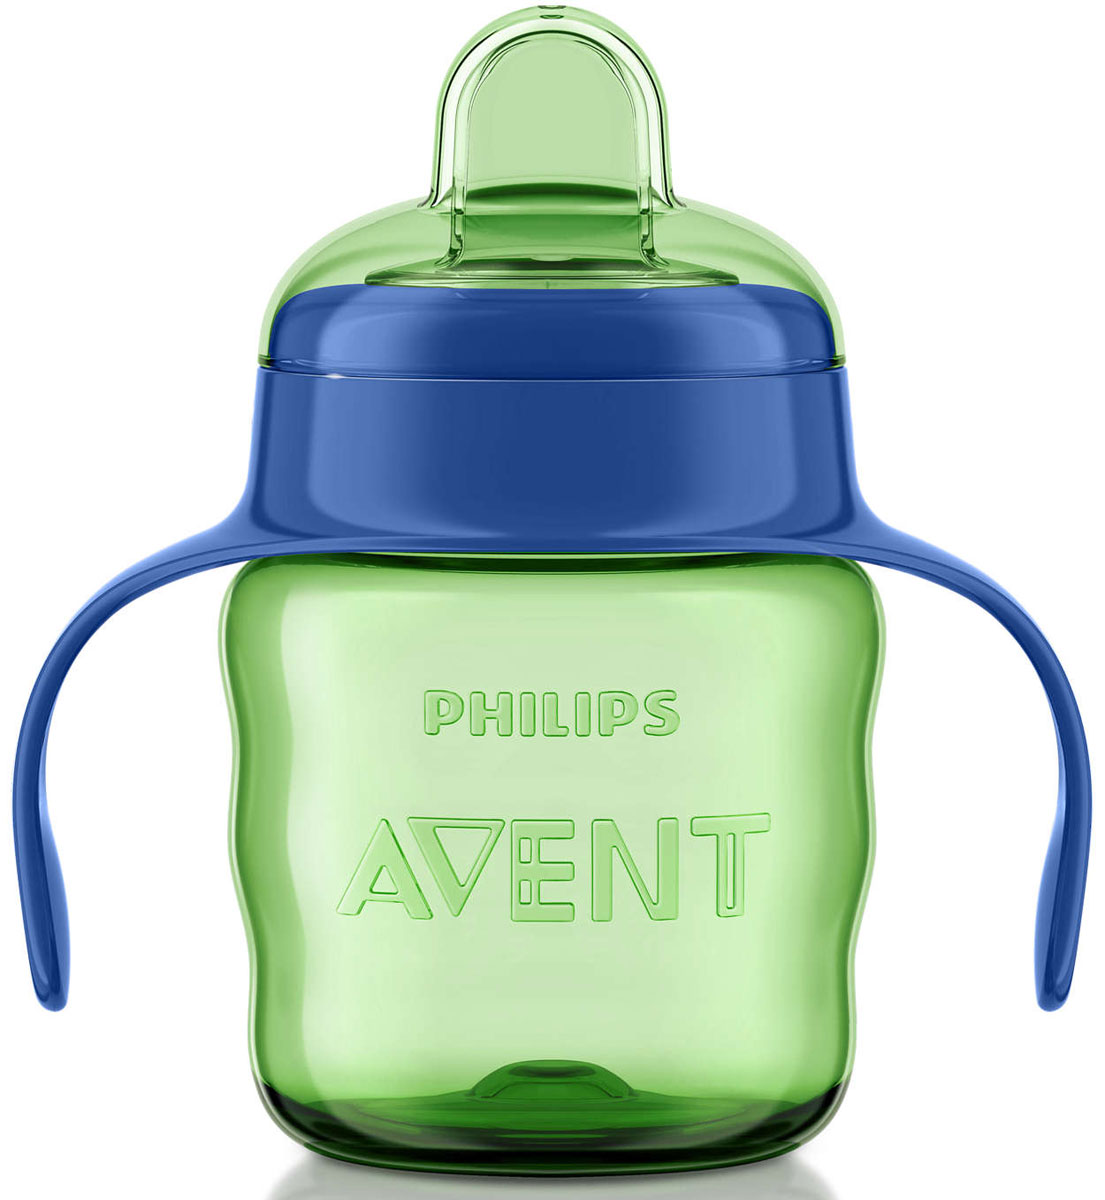 Philips Avent Чашка-поильник Comfort от 6 месяцев цвет салатовый синий 200 мл SCF551/00 usb rechargeable foldable touch dimming desk lamp 42 led 3 brightness adjustable eye protect ultra thin reading study lamp